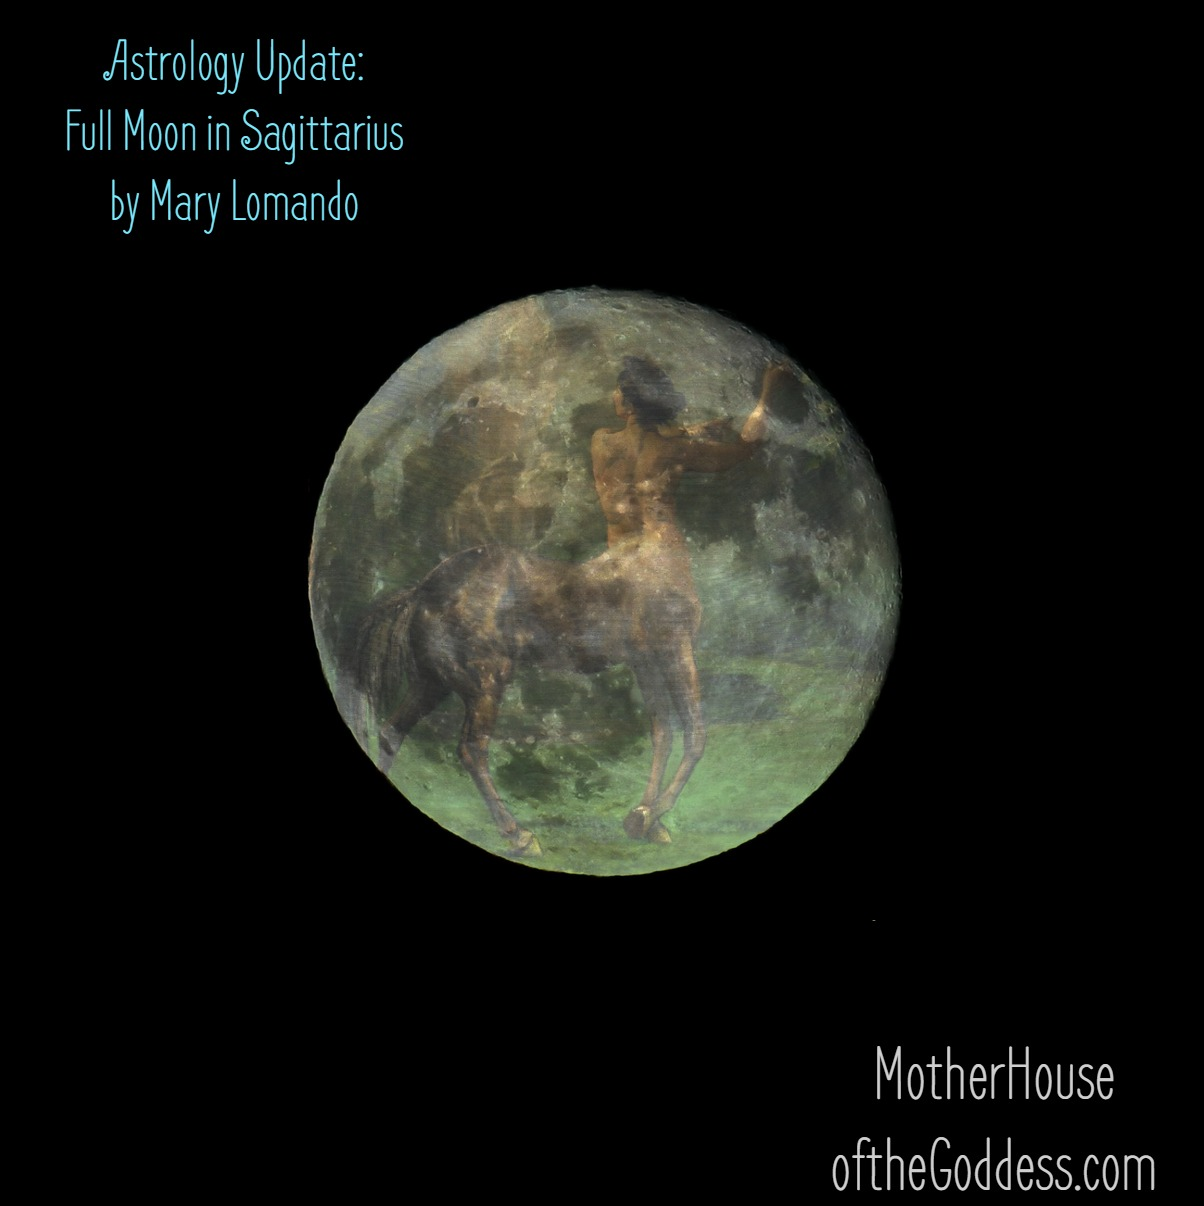 Astrology Update - Full Moon in Sagittarius May 21 by Mary Lomando for MotherHouse of the Goddess